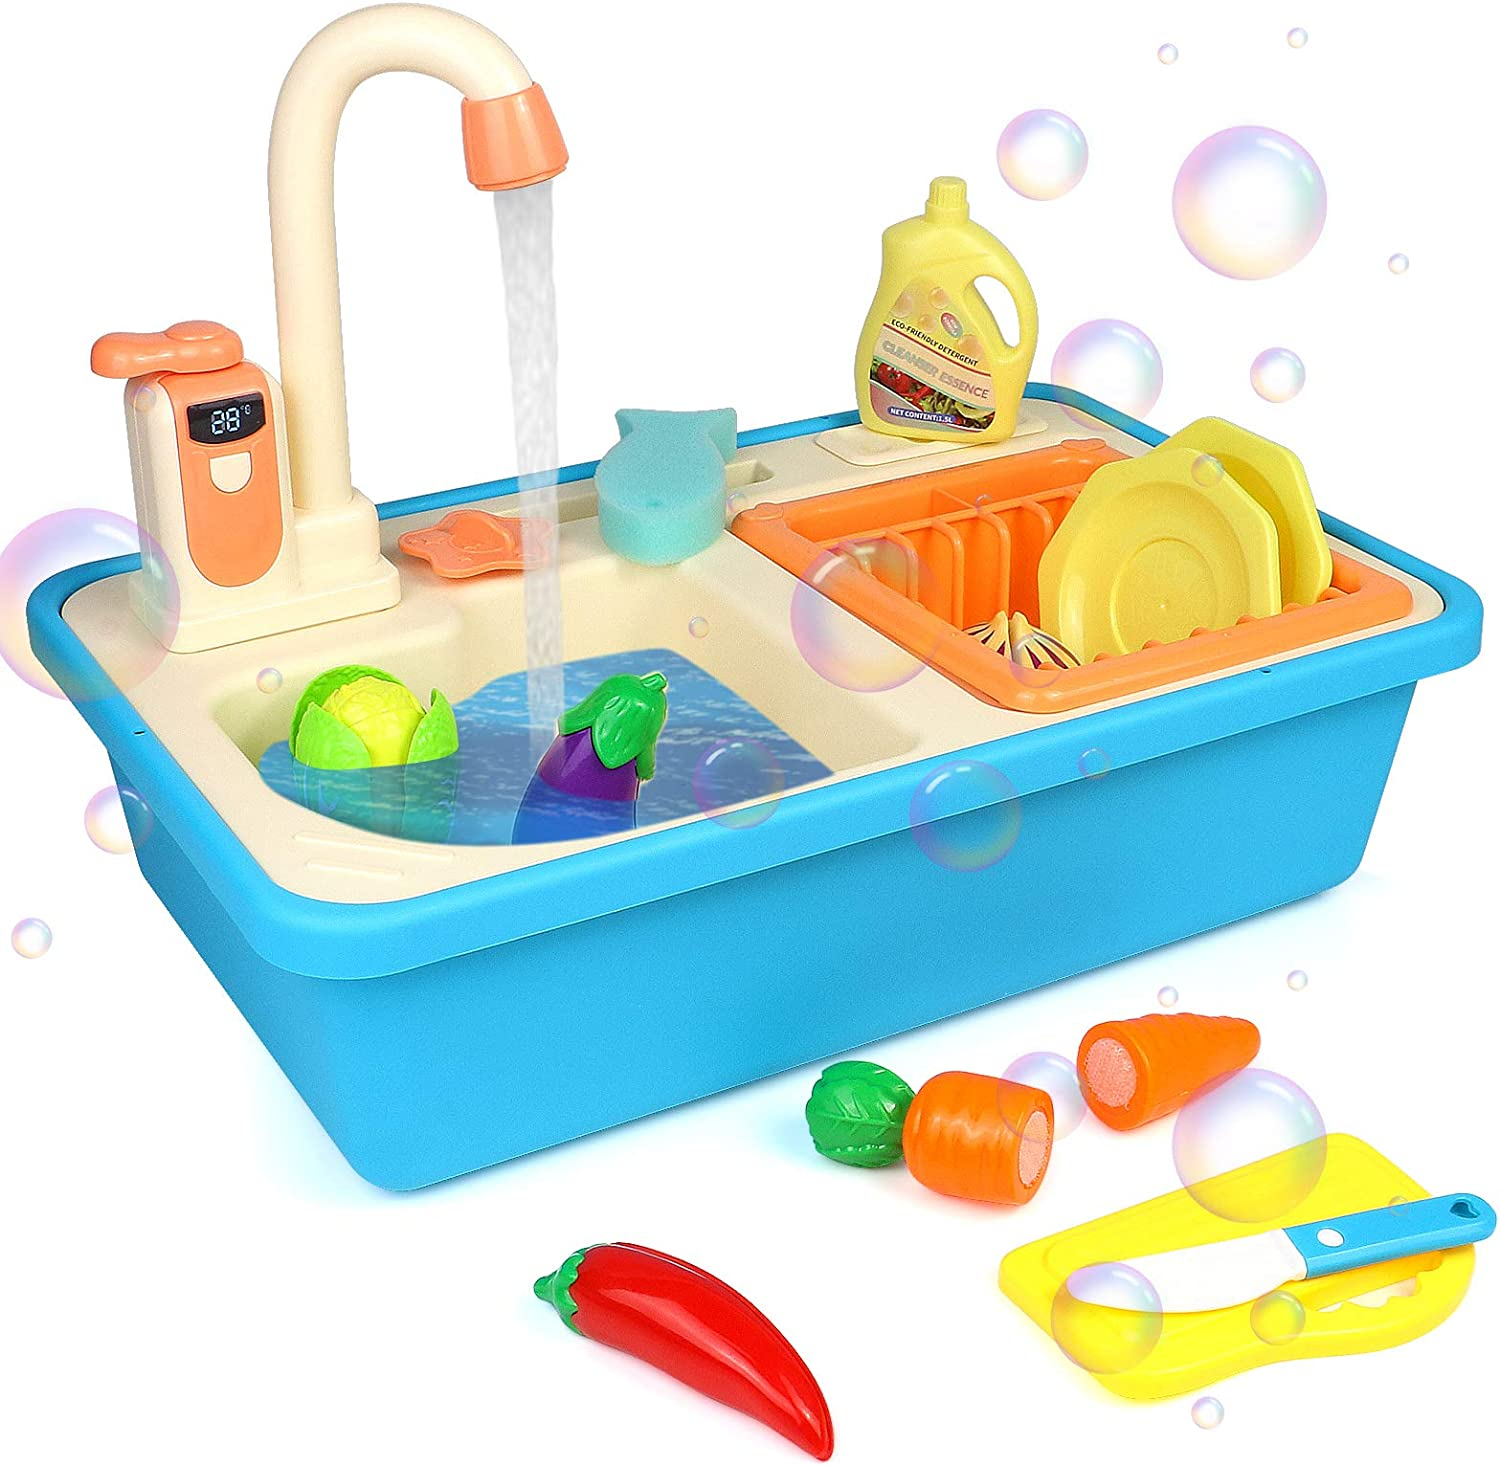 Fajiabao Kitchen Sink Toy with Running Water Play Fruits Vegetables Cutting Games Pretend Play Preschool Toys Indoor Outdoor Activities Food Kits Boys Girls Kids Holiday Birthday Gift 3 4 5 Years Old